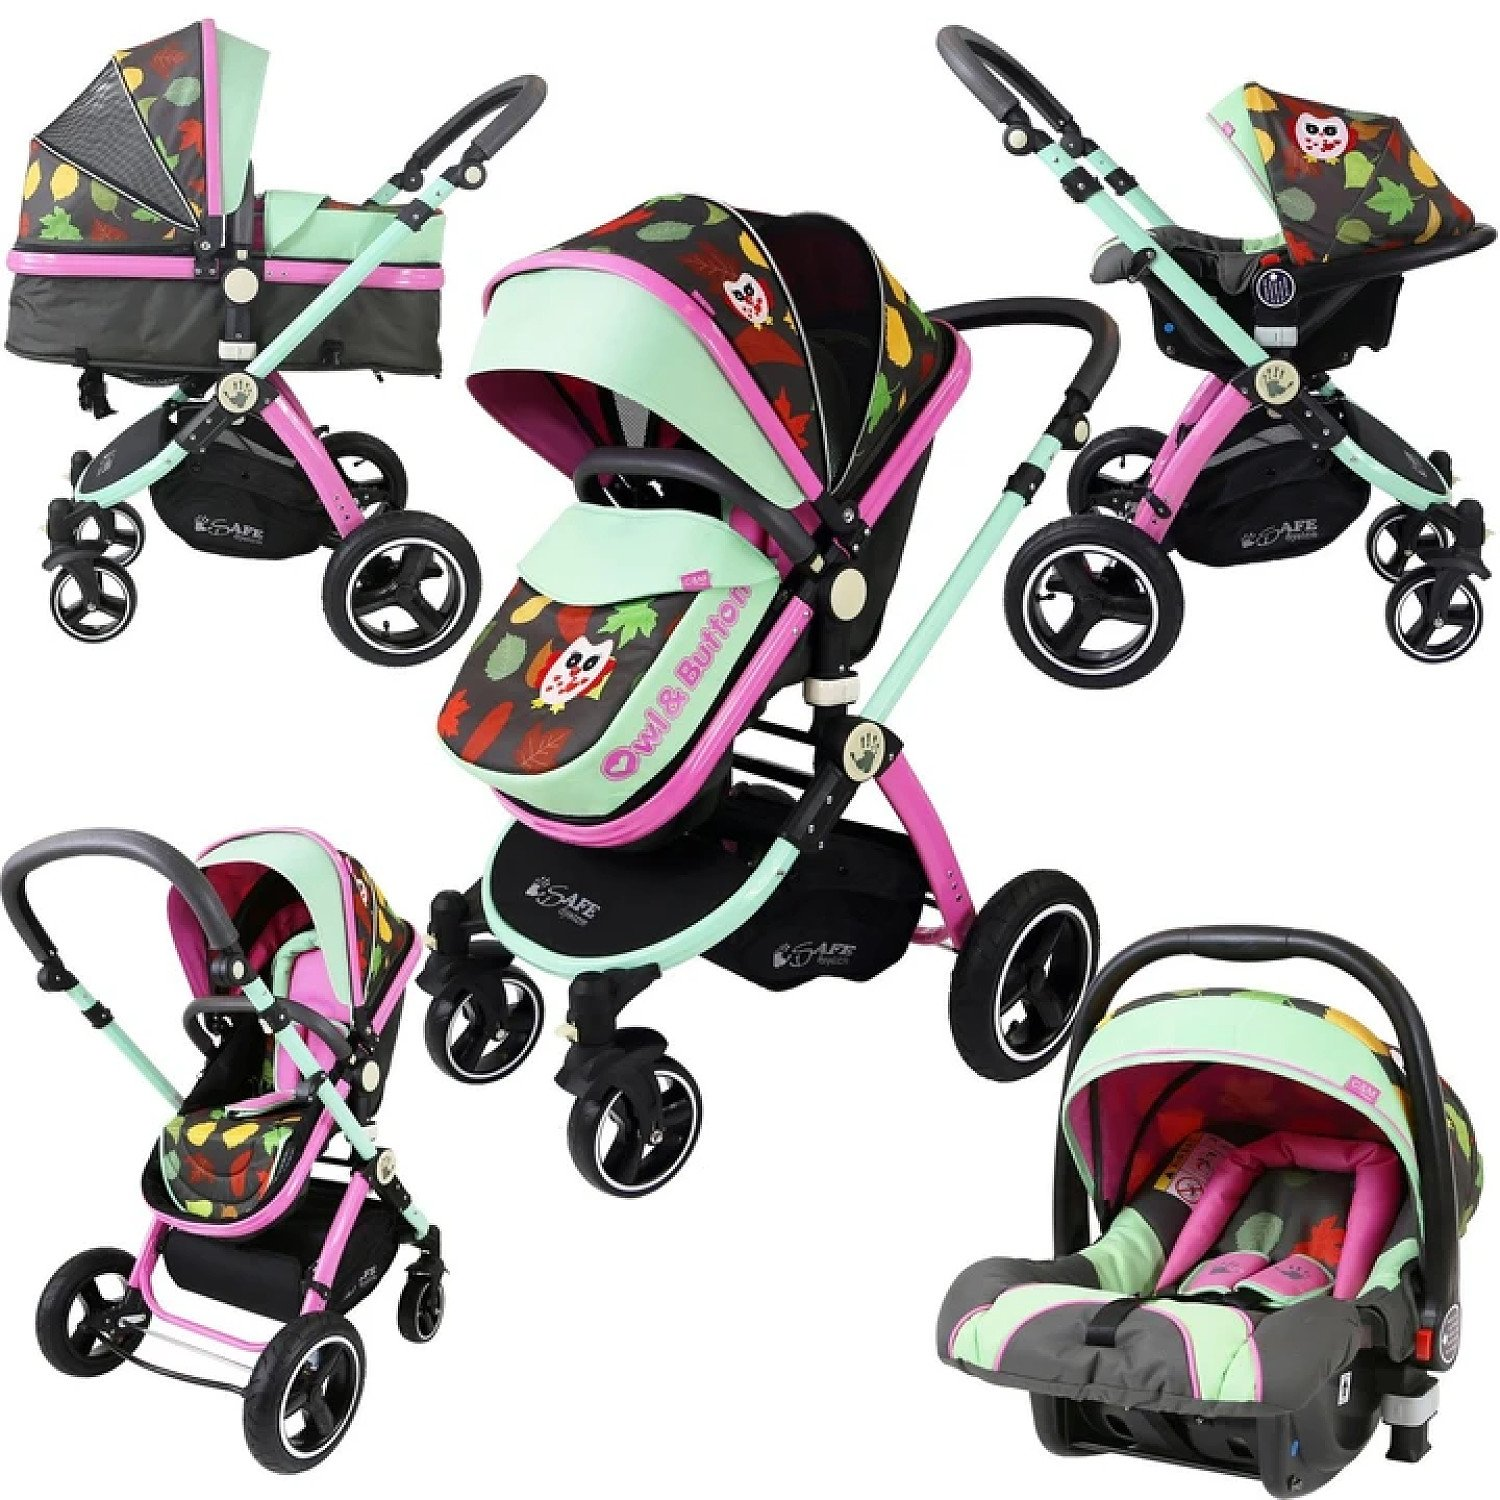 2 in 1 iSafe Pram System - Button Owl (Limited Edition) + Carseat Free Postage